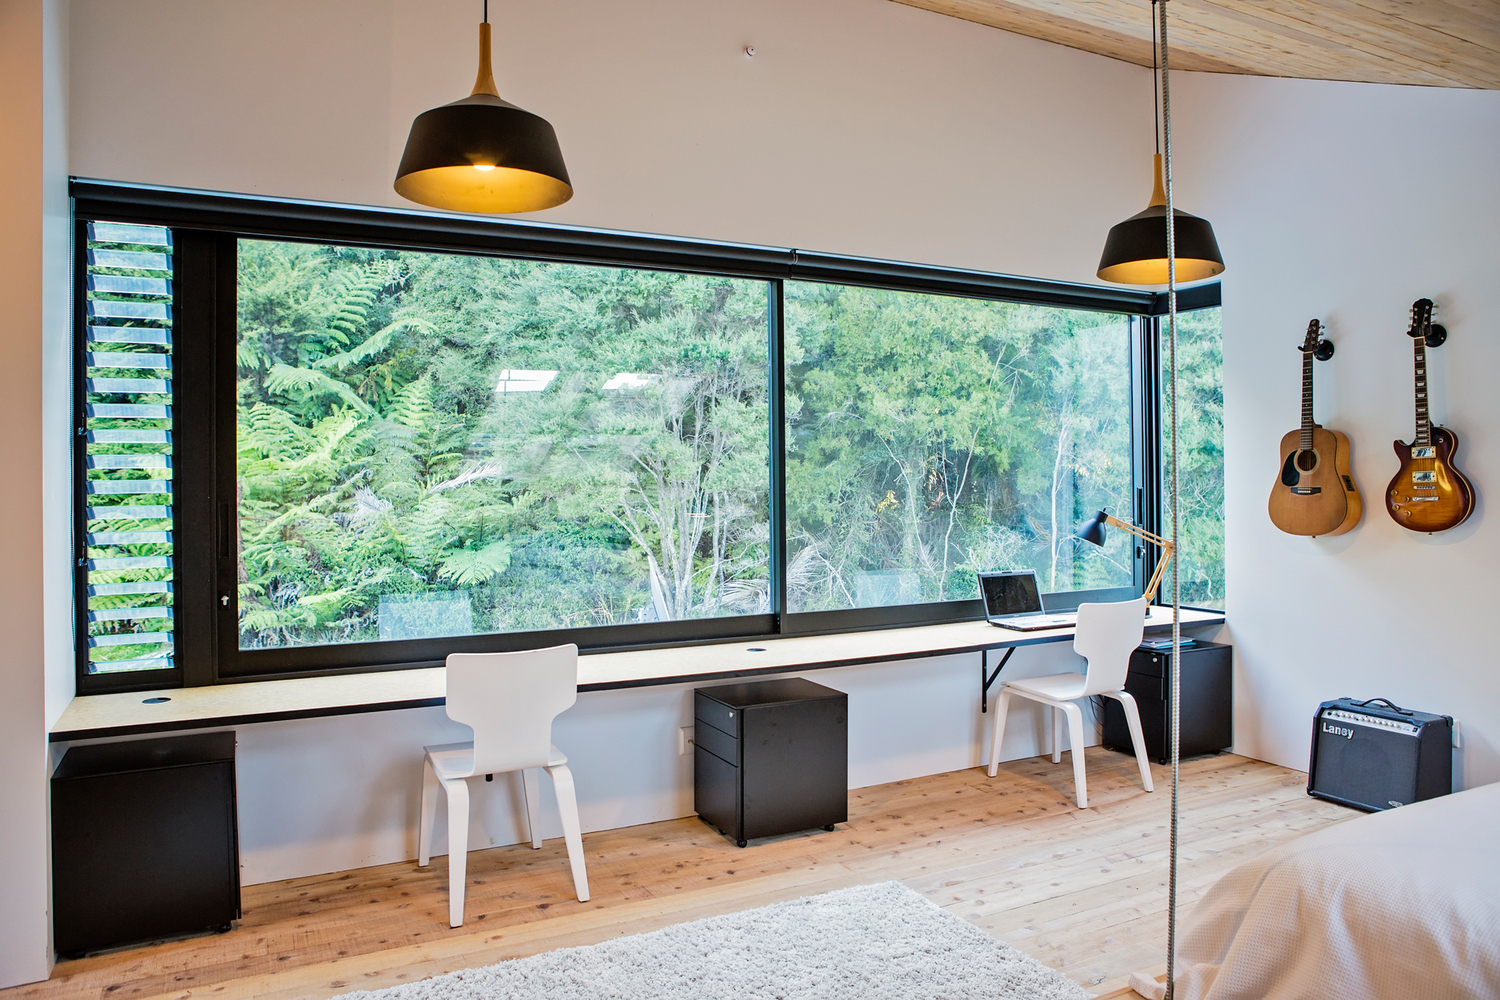 The master bedroom has a two-person desk placed in front of the windows